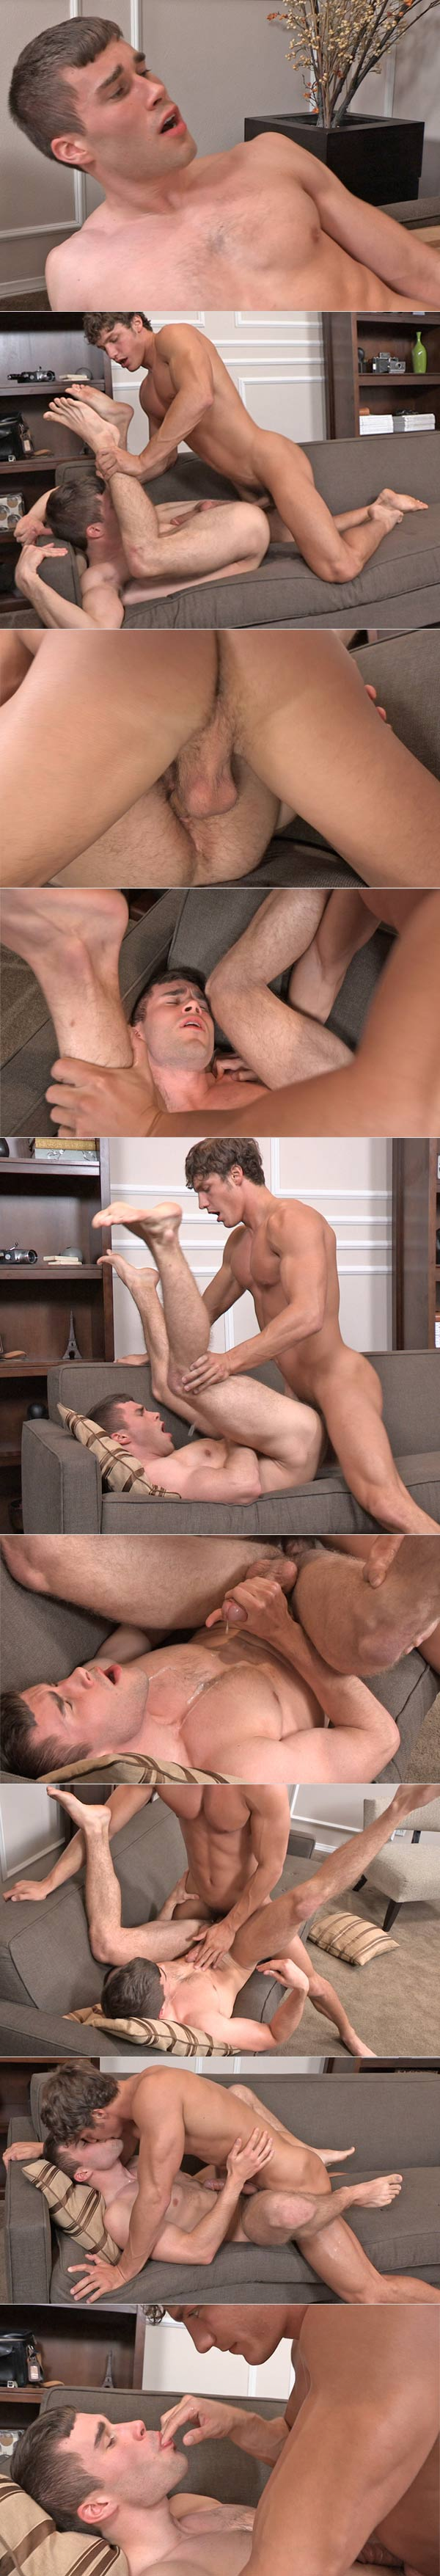 Coner & Brandon (Bareback) at SeanCody